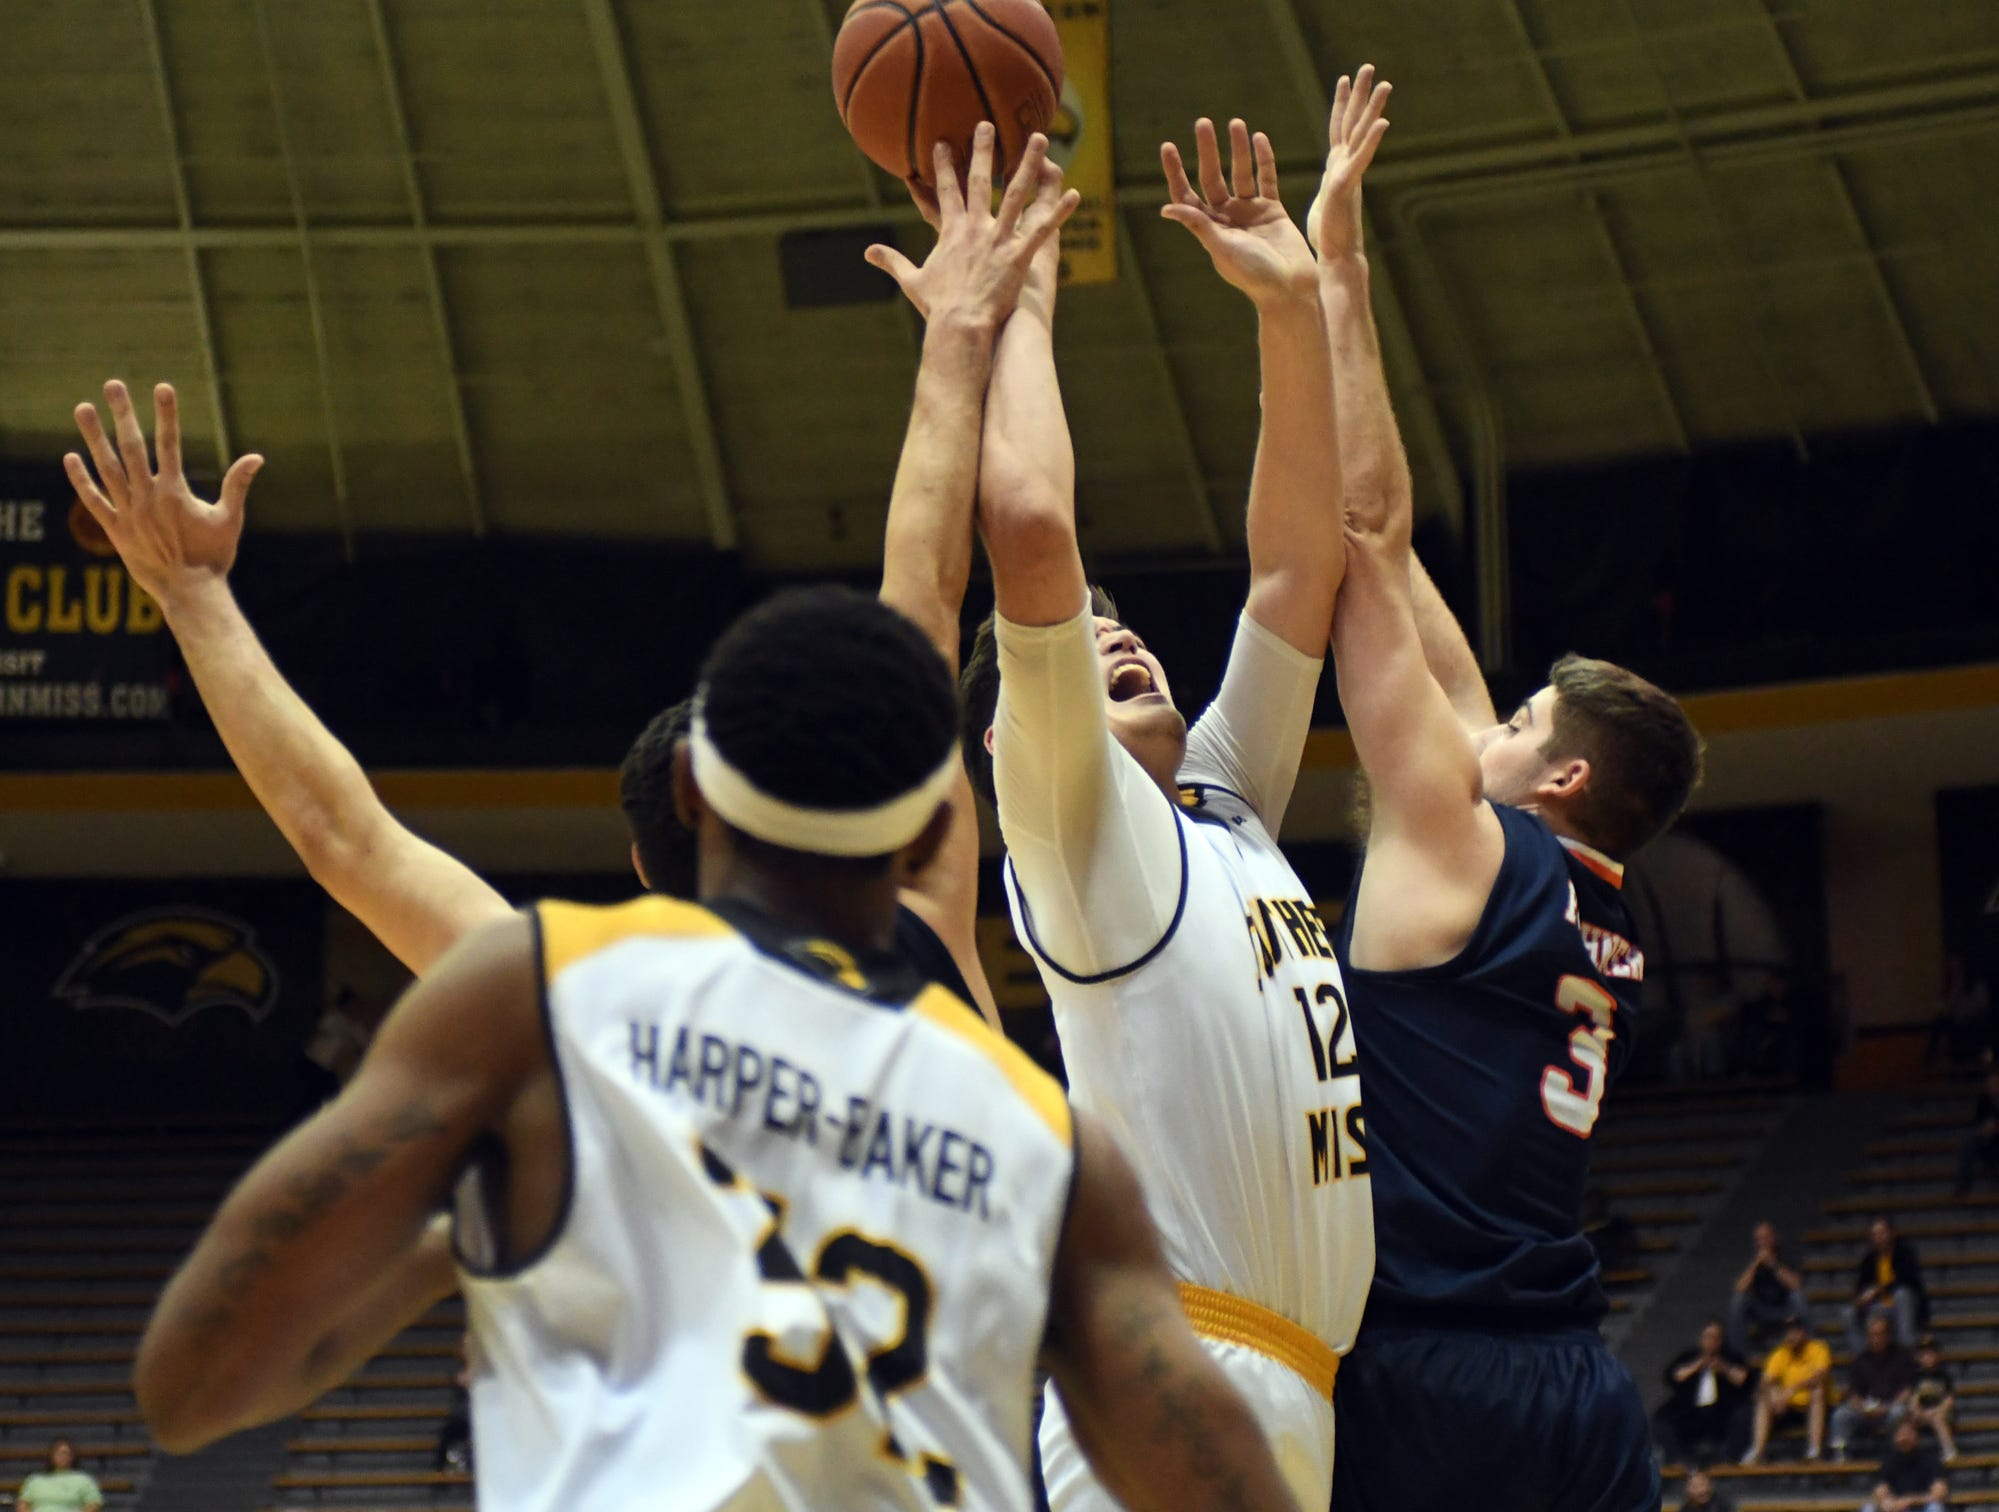 Southern Miss forward Tim Rowe reaches for a loose ball in a game against UTSA in Reed Green Coliseum on Saturday, March 9, 2019.